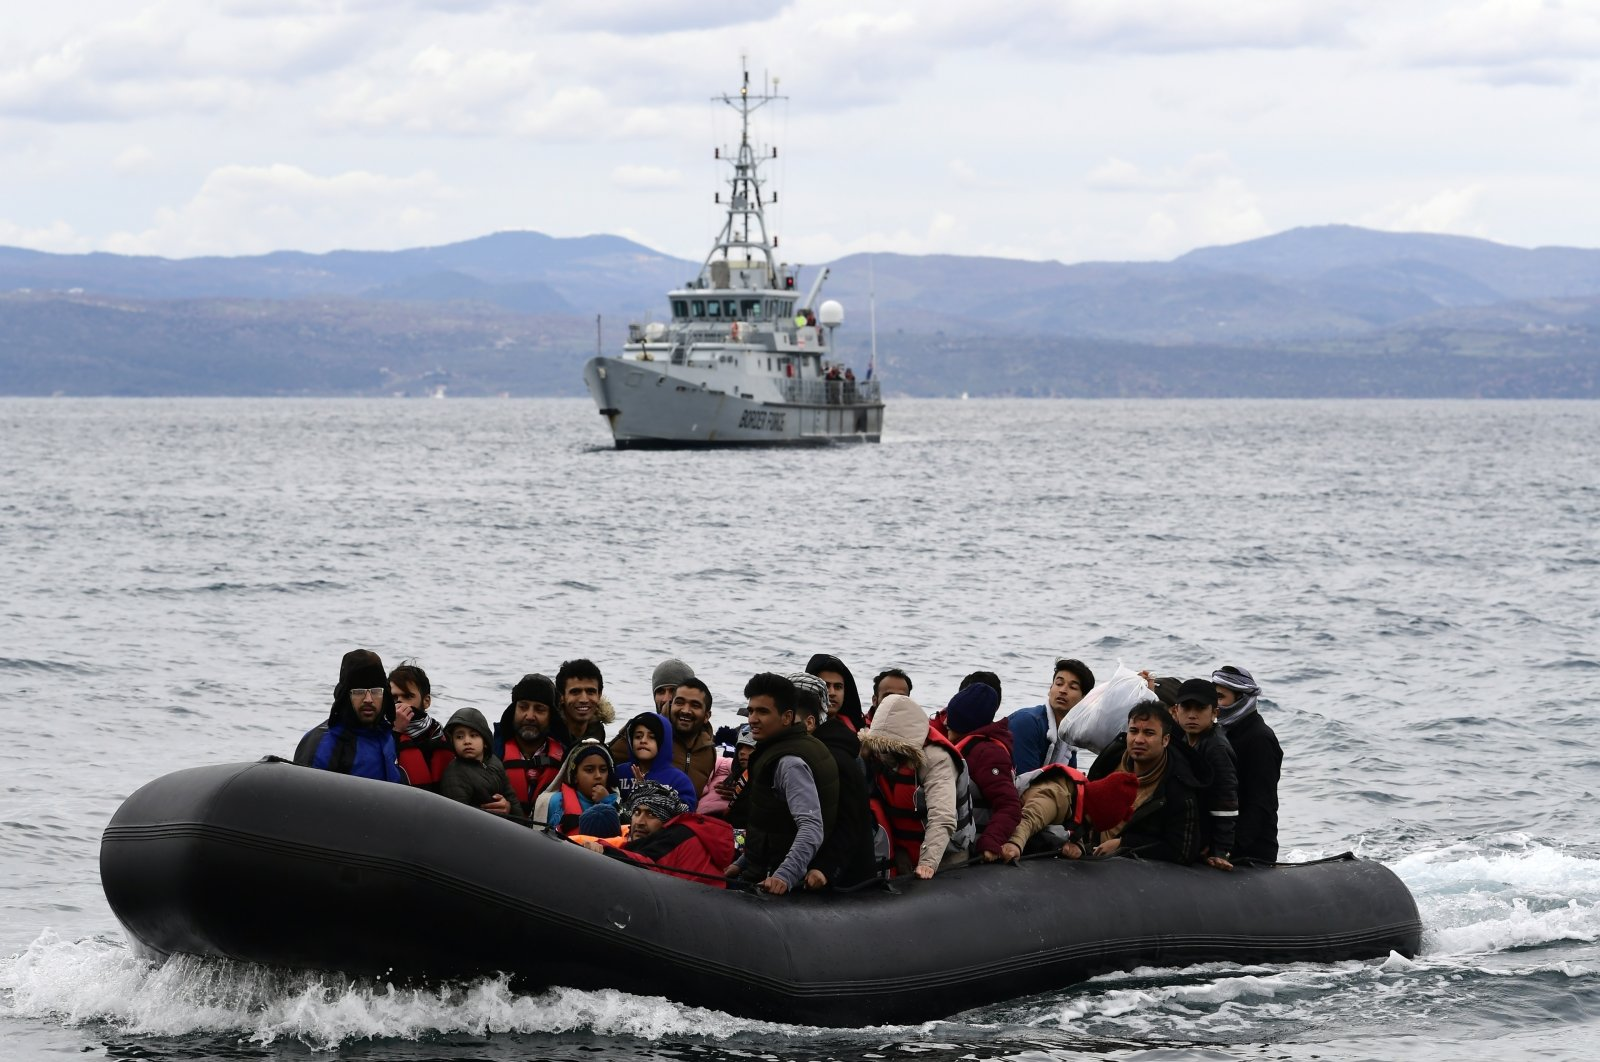 Migrants arrive with a dinghy accompanied by a Frontex vessel at the village of Skala Sikaminias, on the Greek island of Lesbos, after crossing the Aegean sea from Turkey, Feb. 28, 2020. (AP)